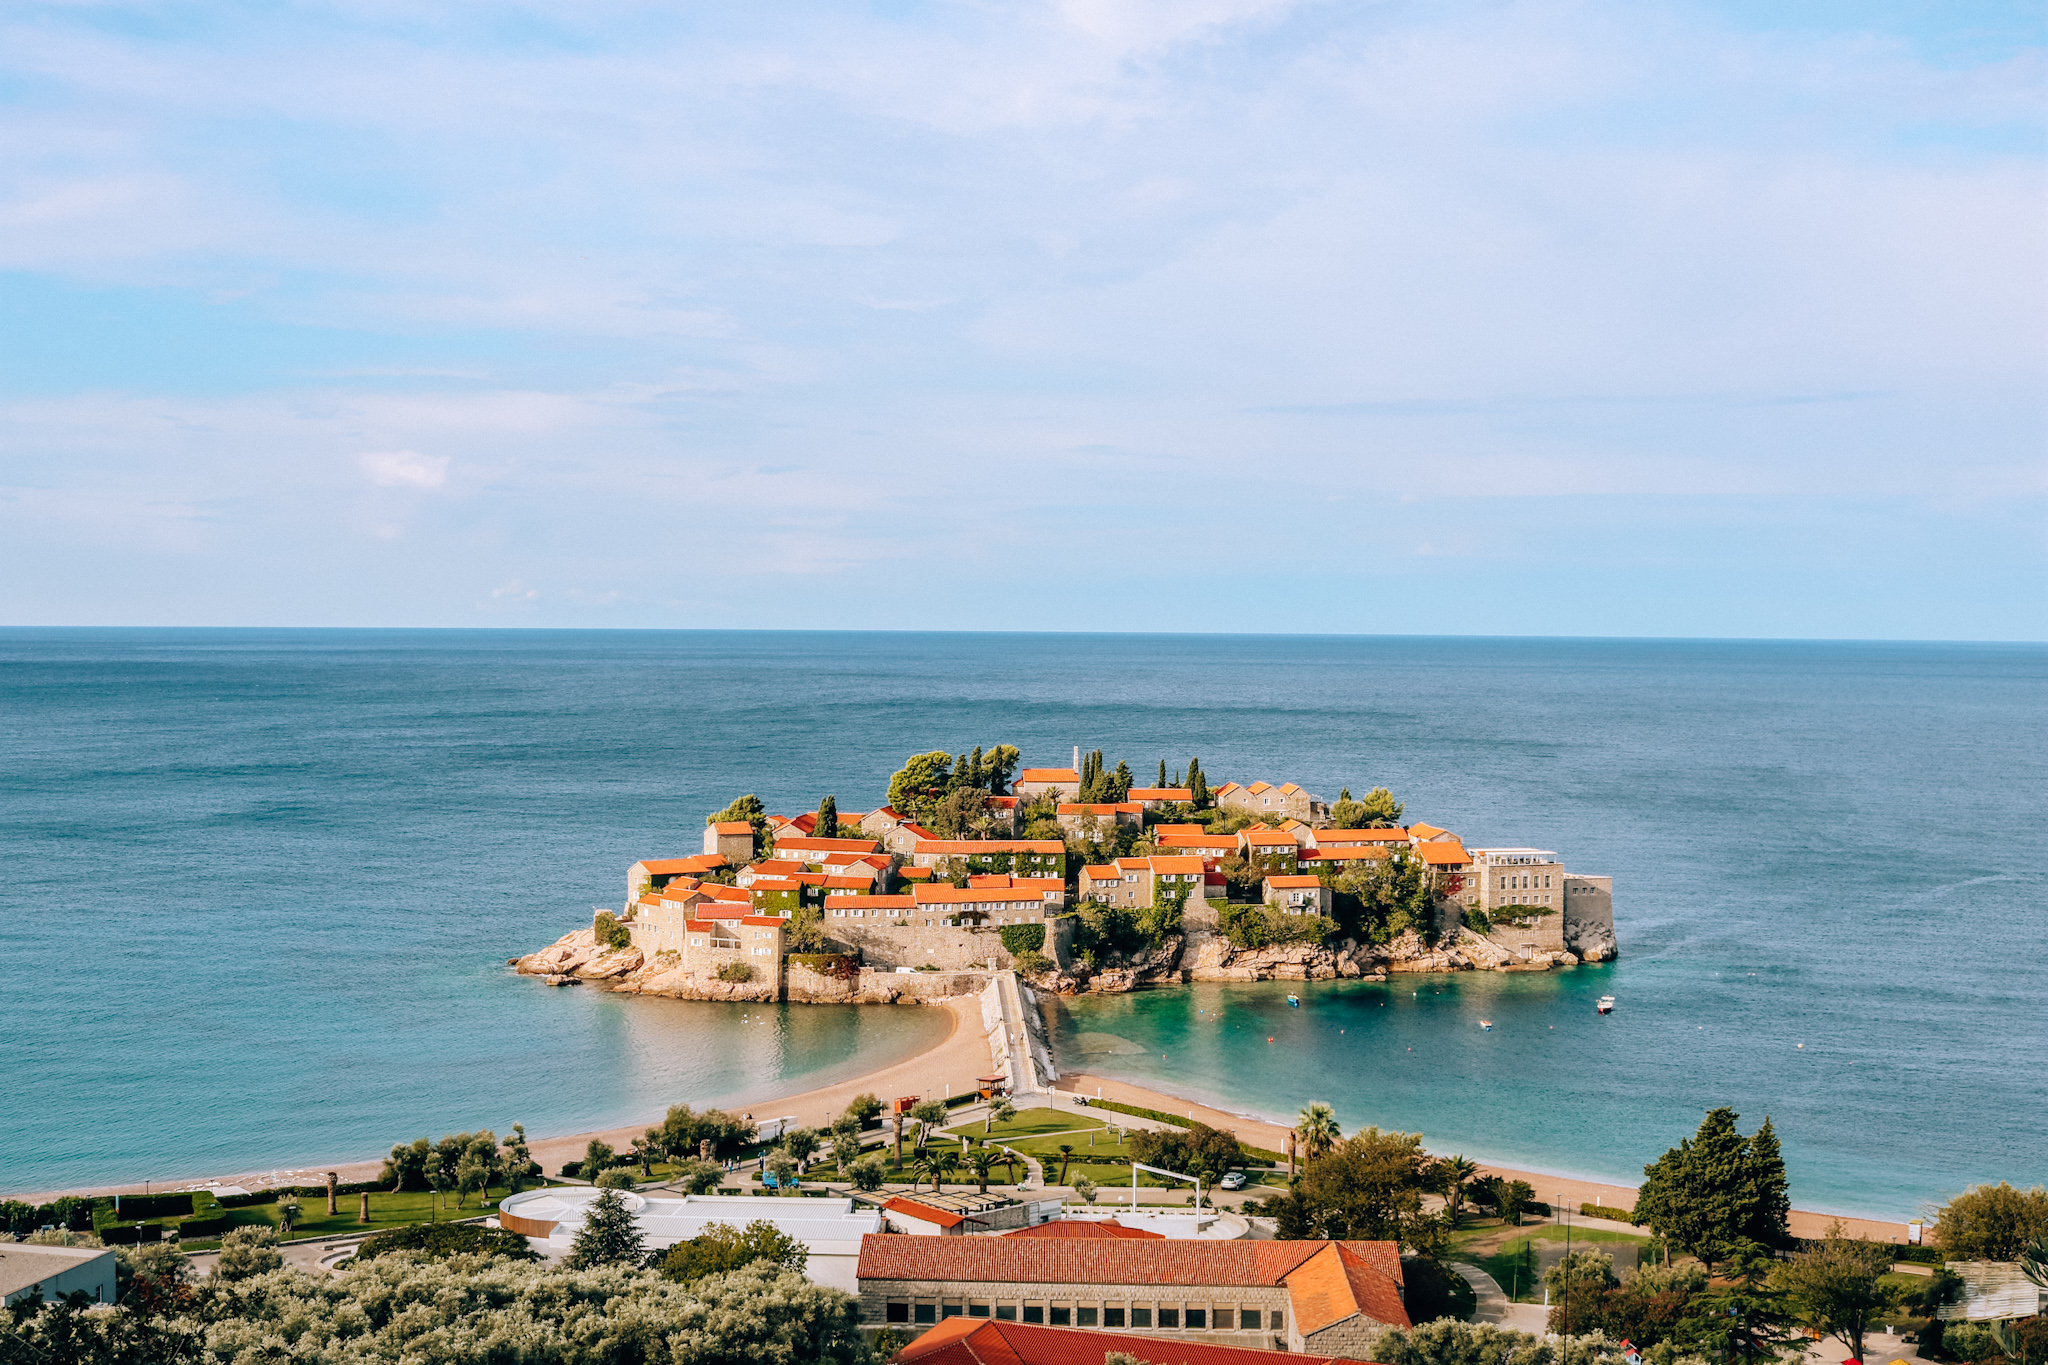 undiscovered Montenegro - a guide to one of the most overlooked and underrated destinations in Europe